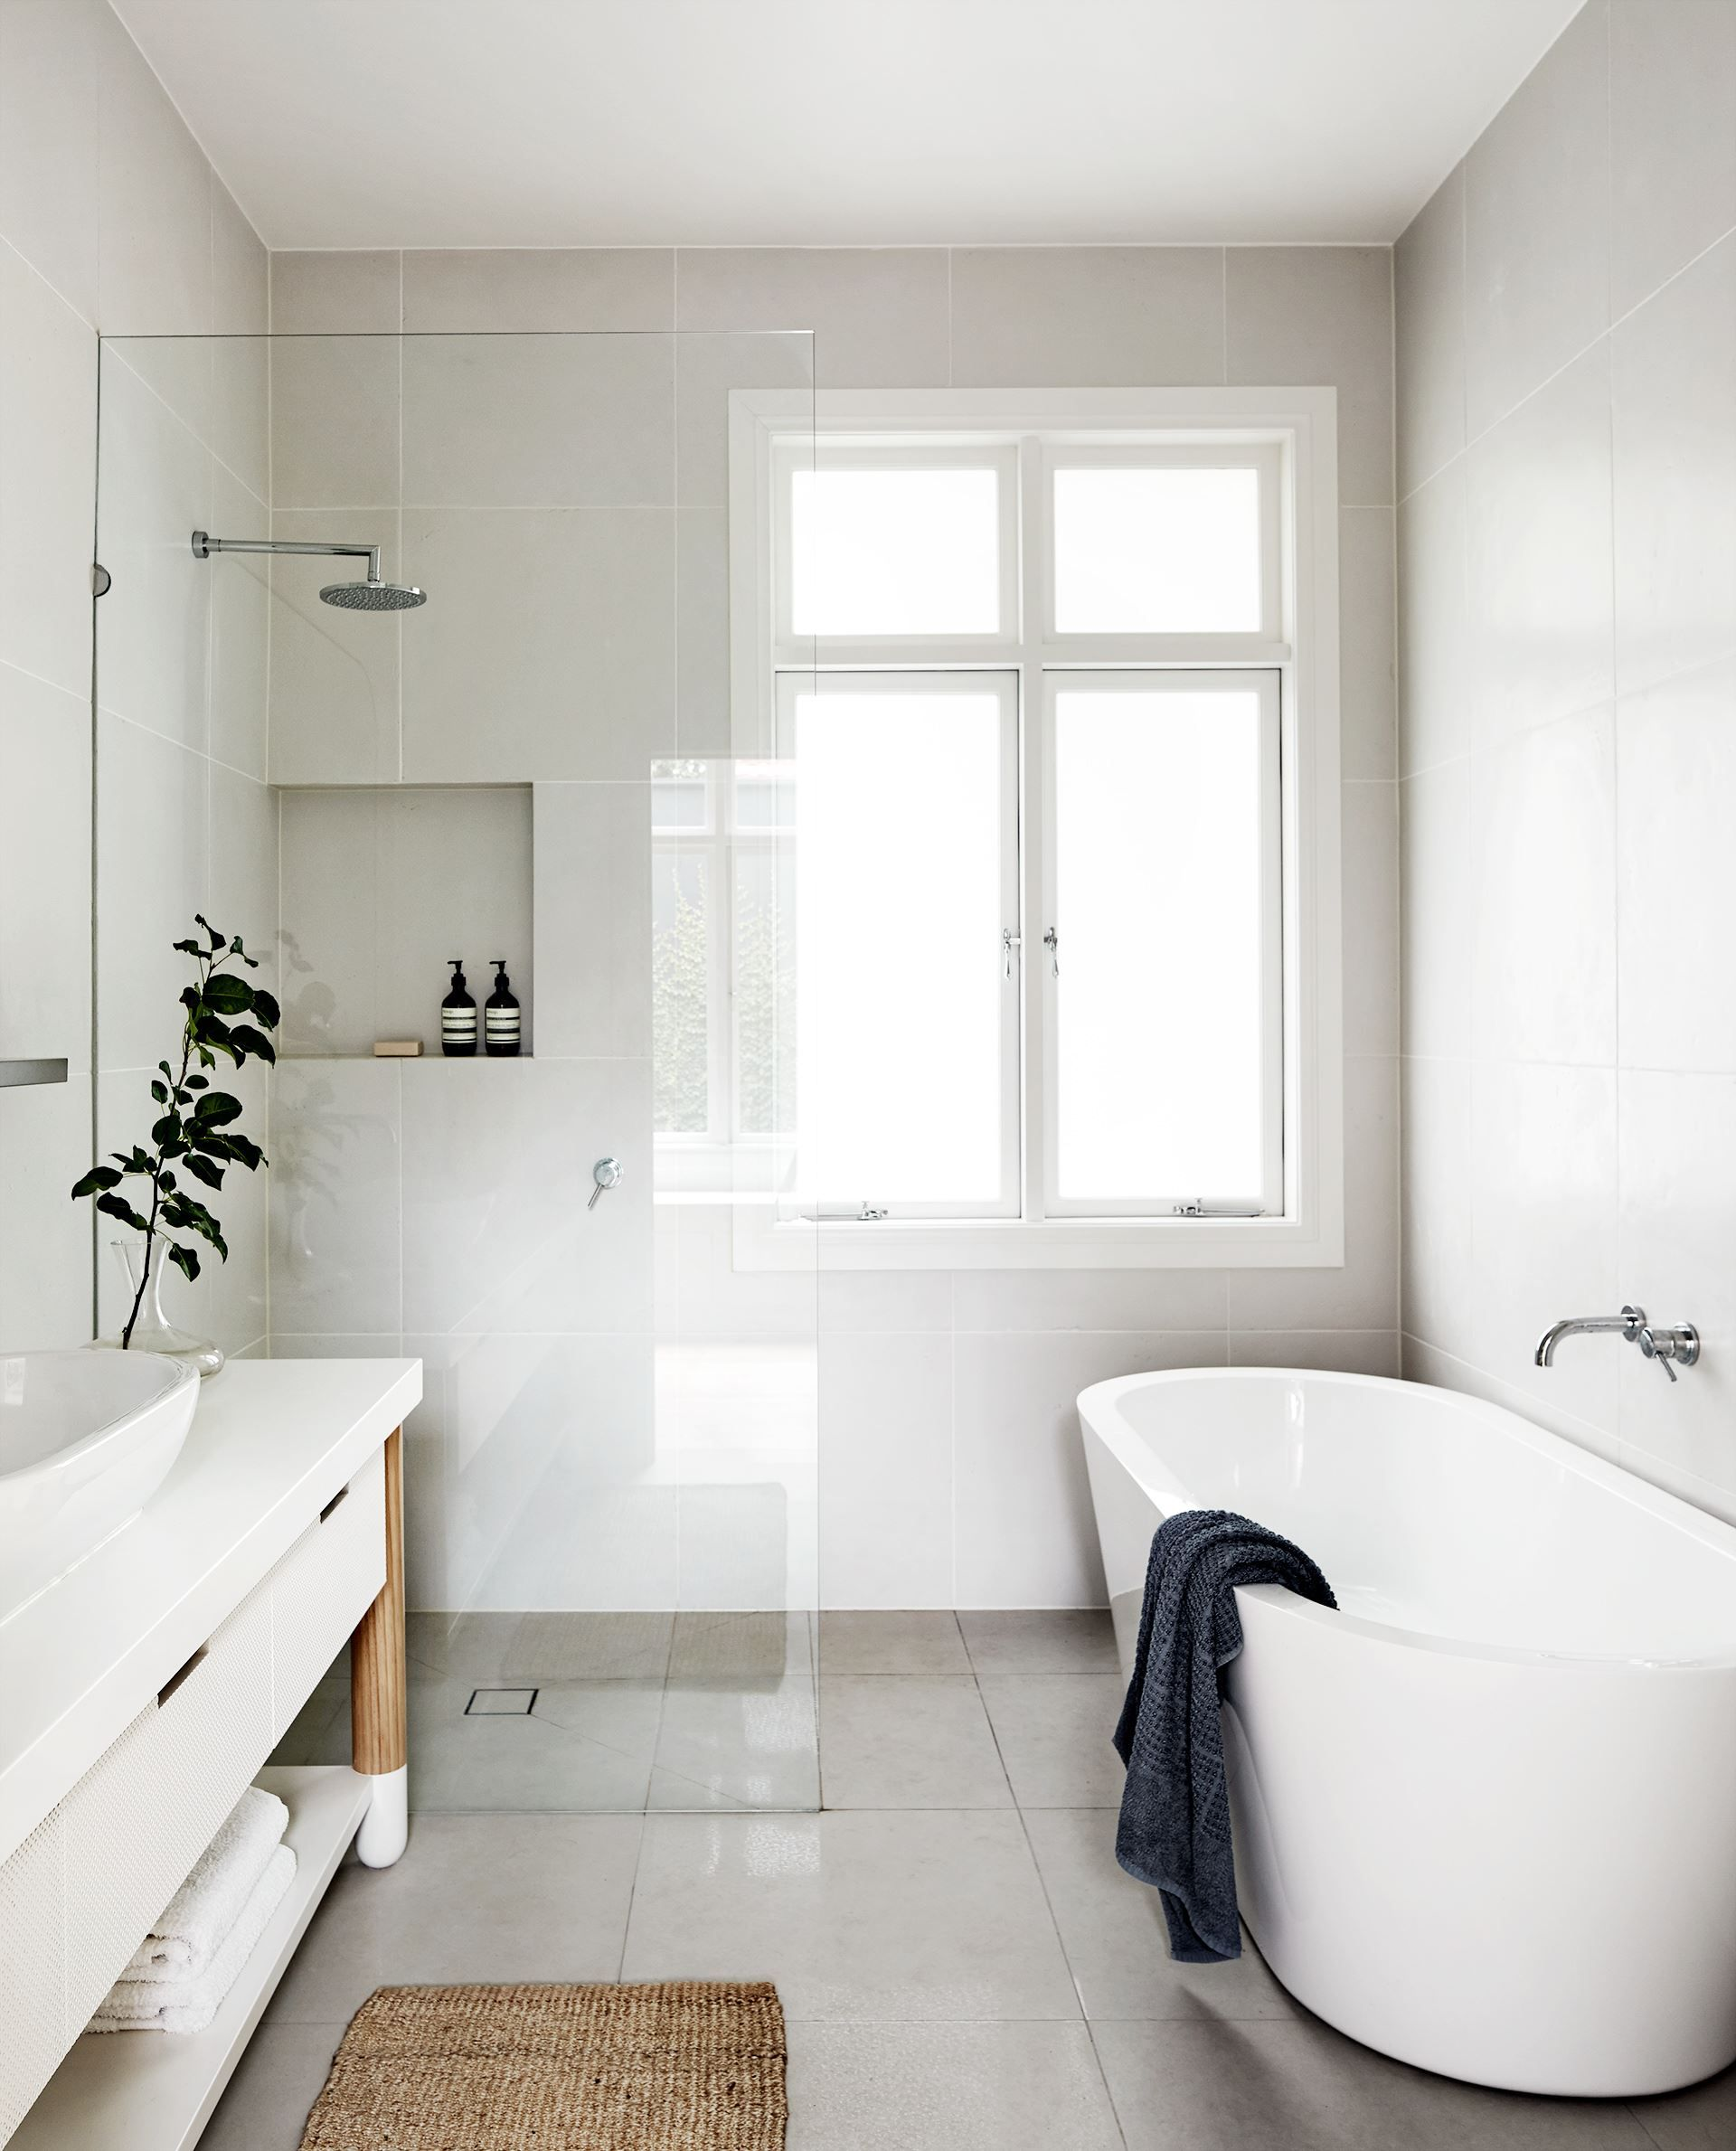 Inspired bathroom blog by diamond interiors vanity basin vanity bench - Light And Air Fiona Lynch Created The Design The Freestanding Vanity Bench With Timber Dowel Leg Detail And Mesh Drawer Fronts Is Subtle But Textural